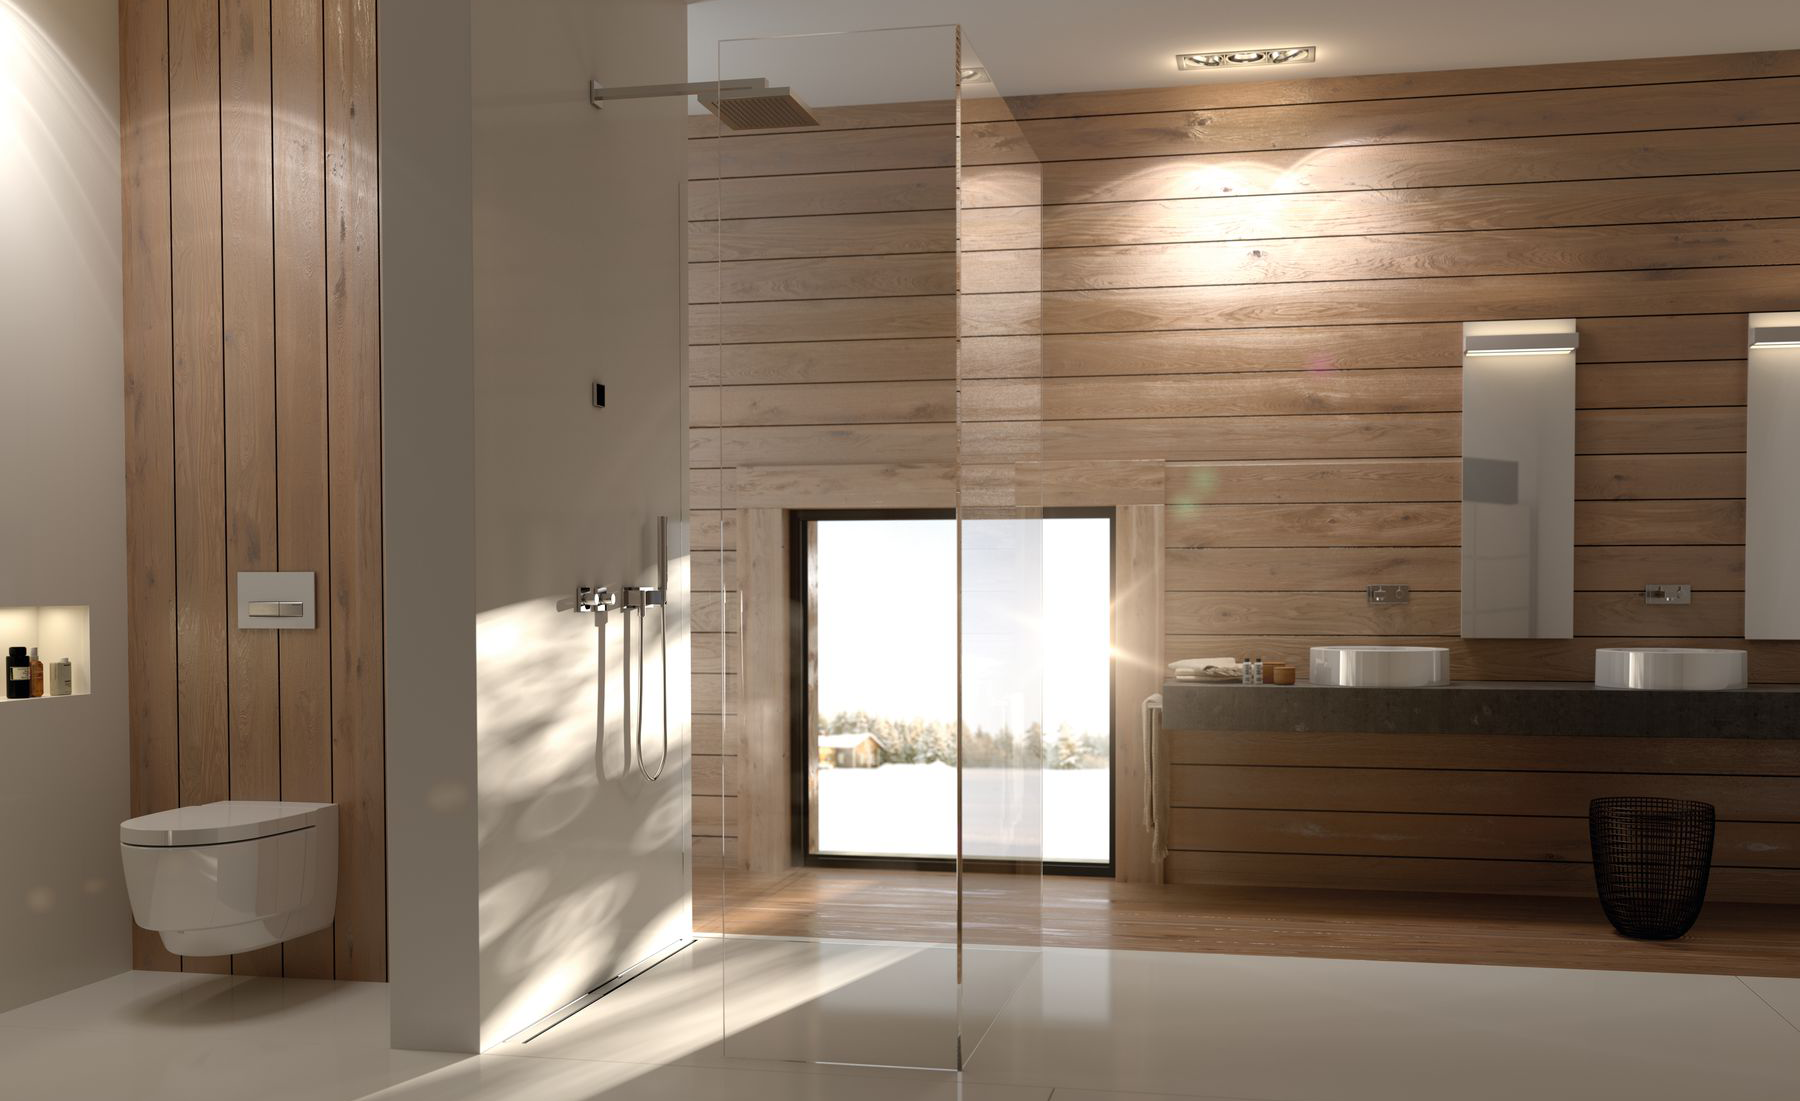 gerberit-mera-bathroom